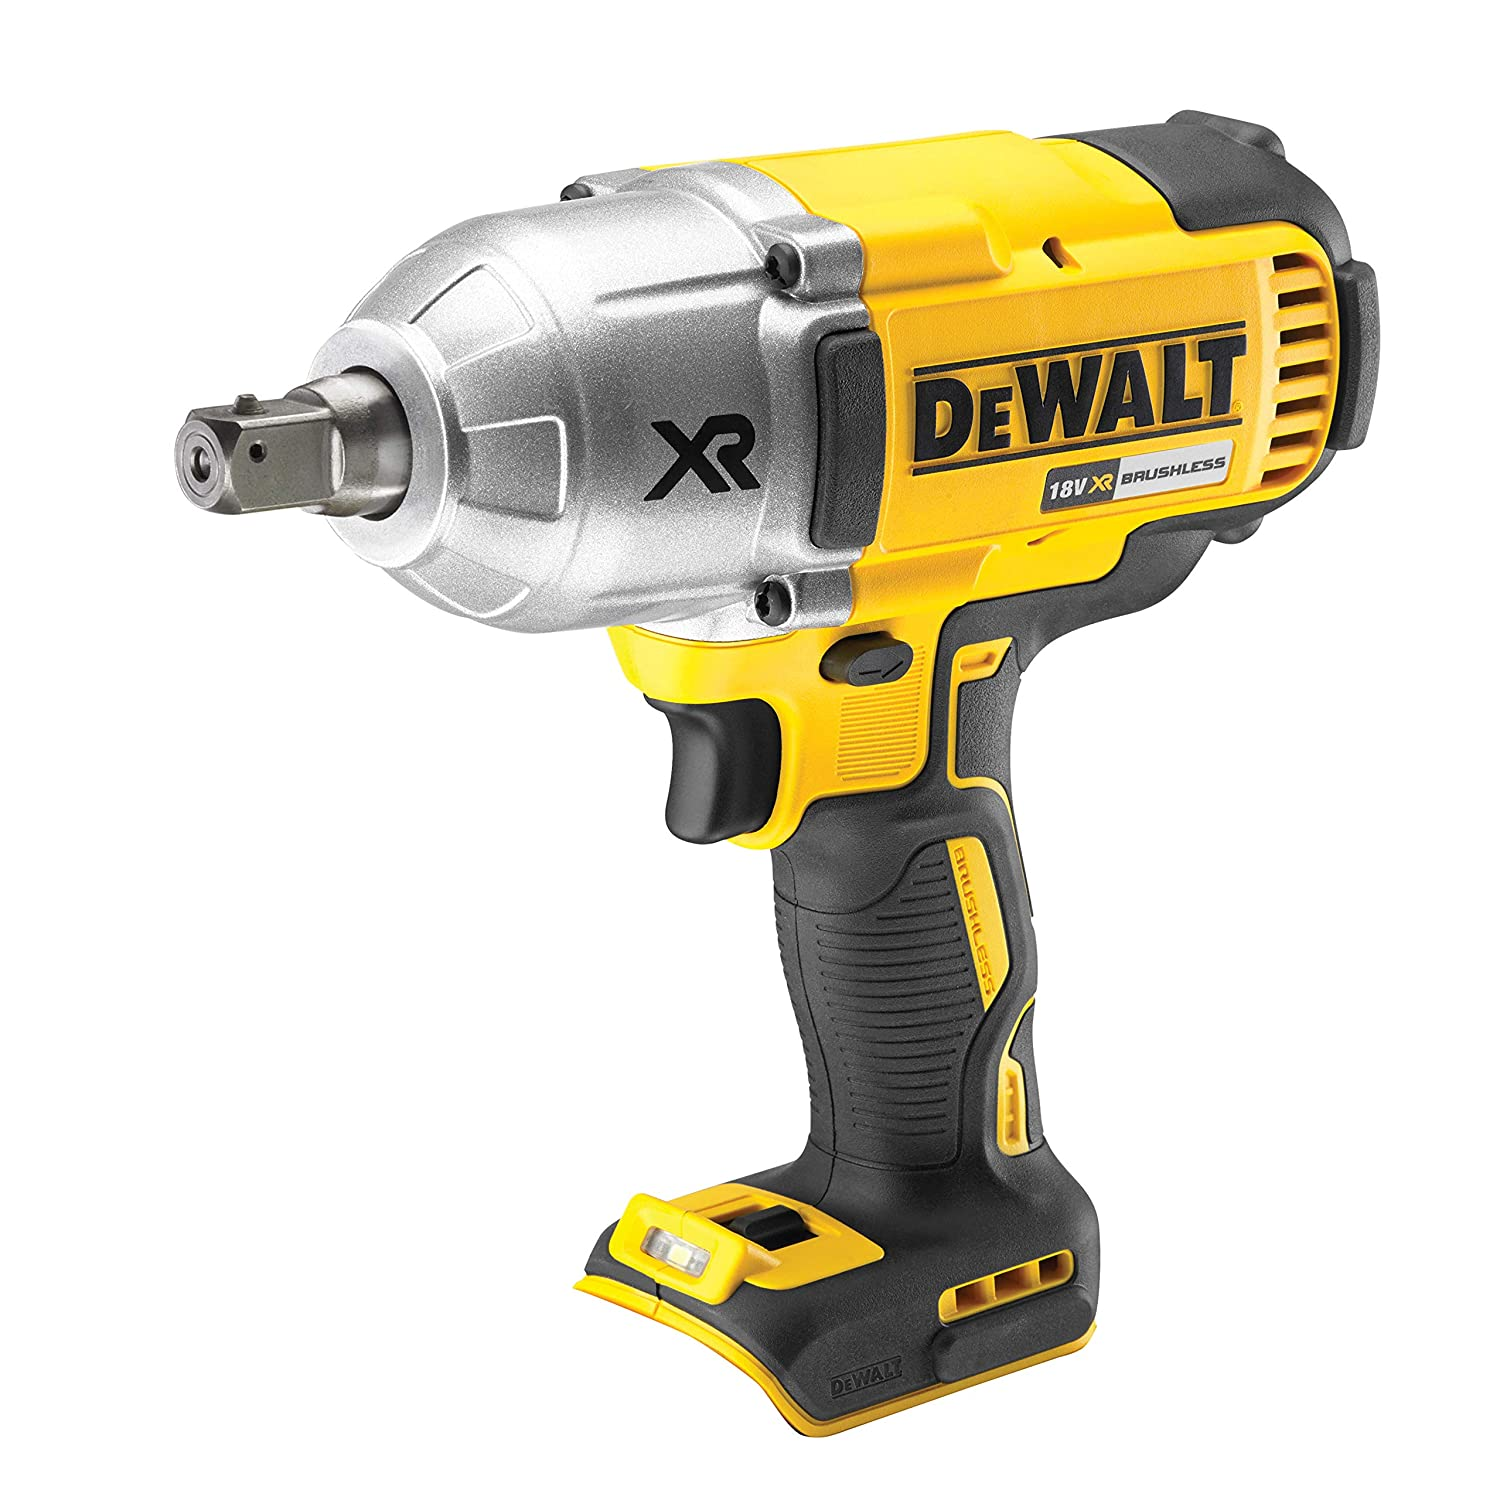 18V, 950Nm, High Torque Impact Wrench, BL,  1/2ʺ, Bare